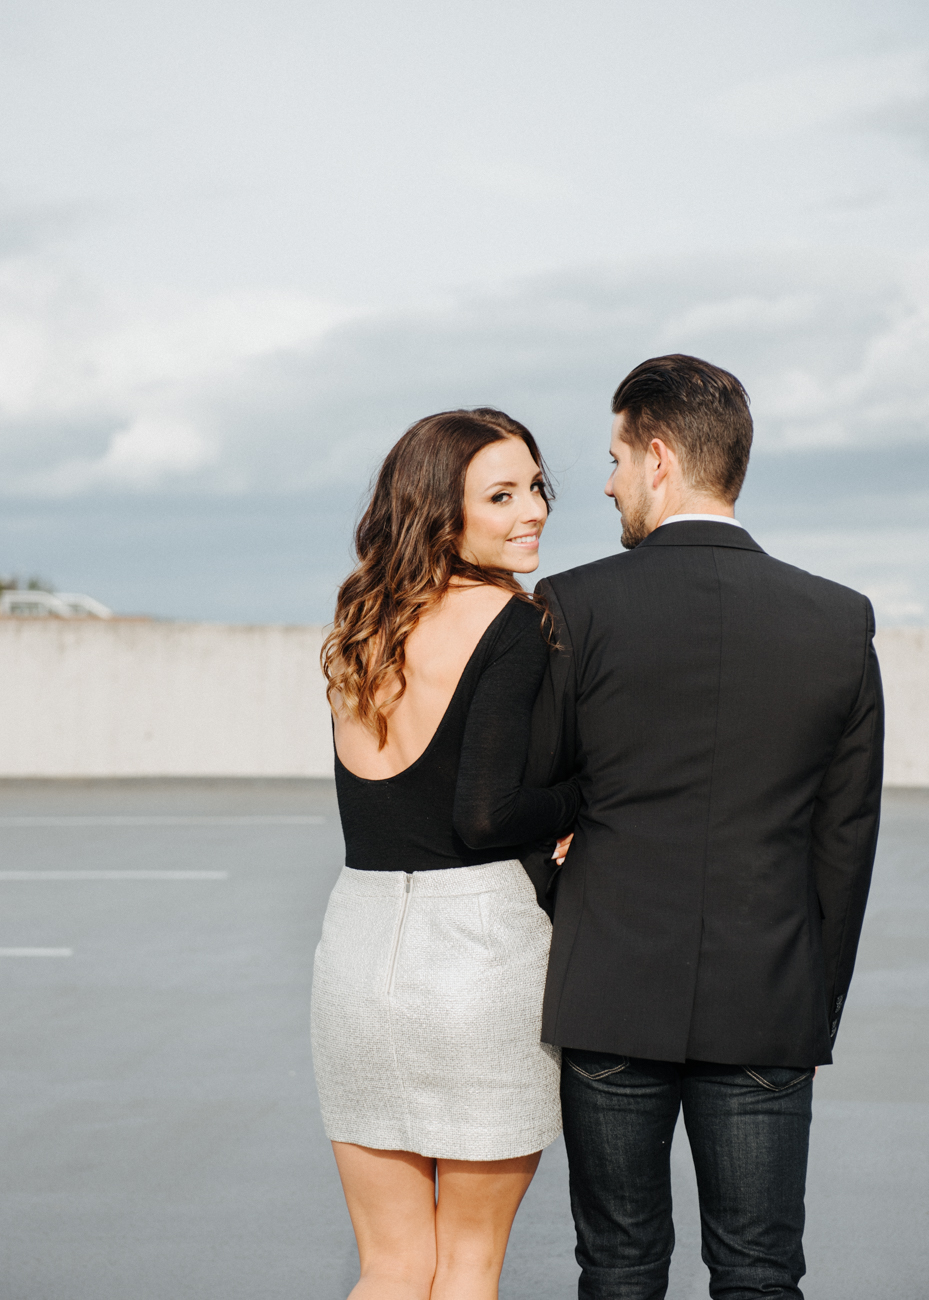 kaoverii_silva_photography_lauren+adam_engagement_photography_vancouver-18.jpg